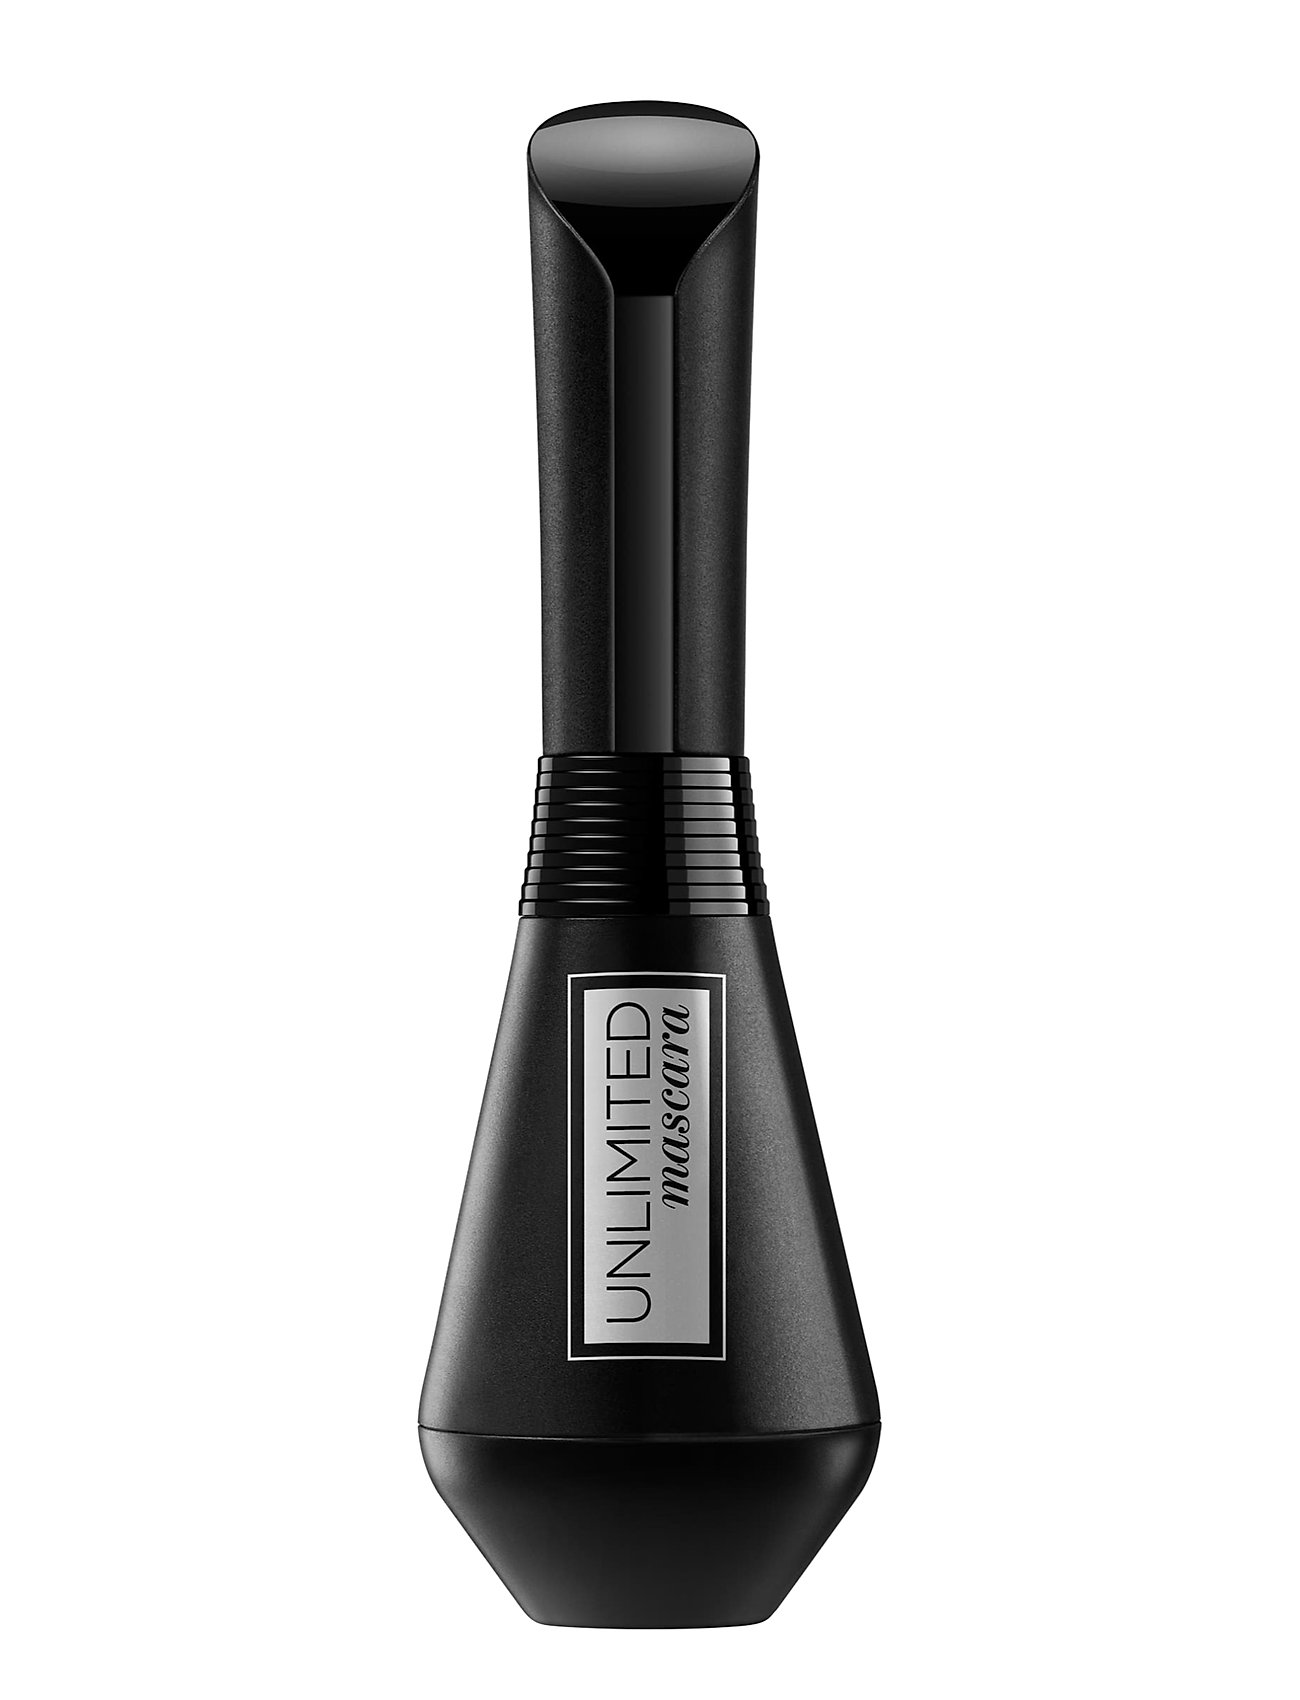 L'Oréal Paris Unlimited Mascara Black - BLACK